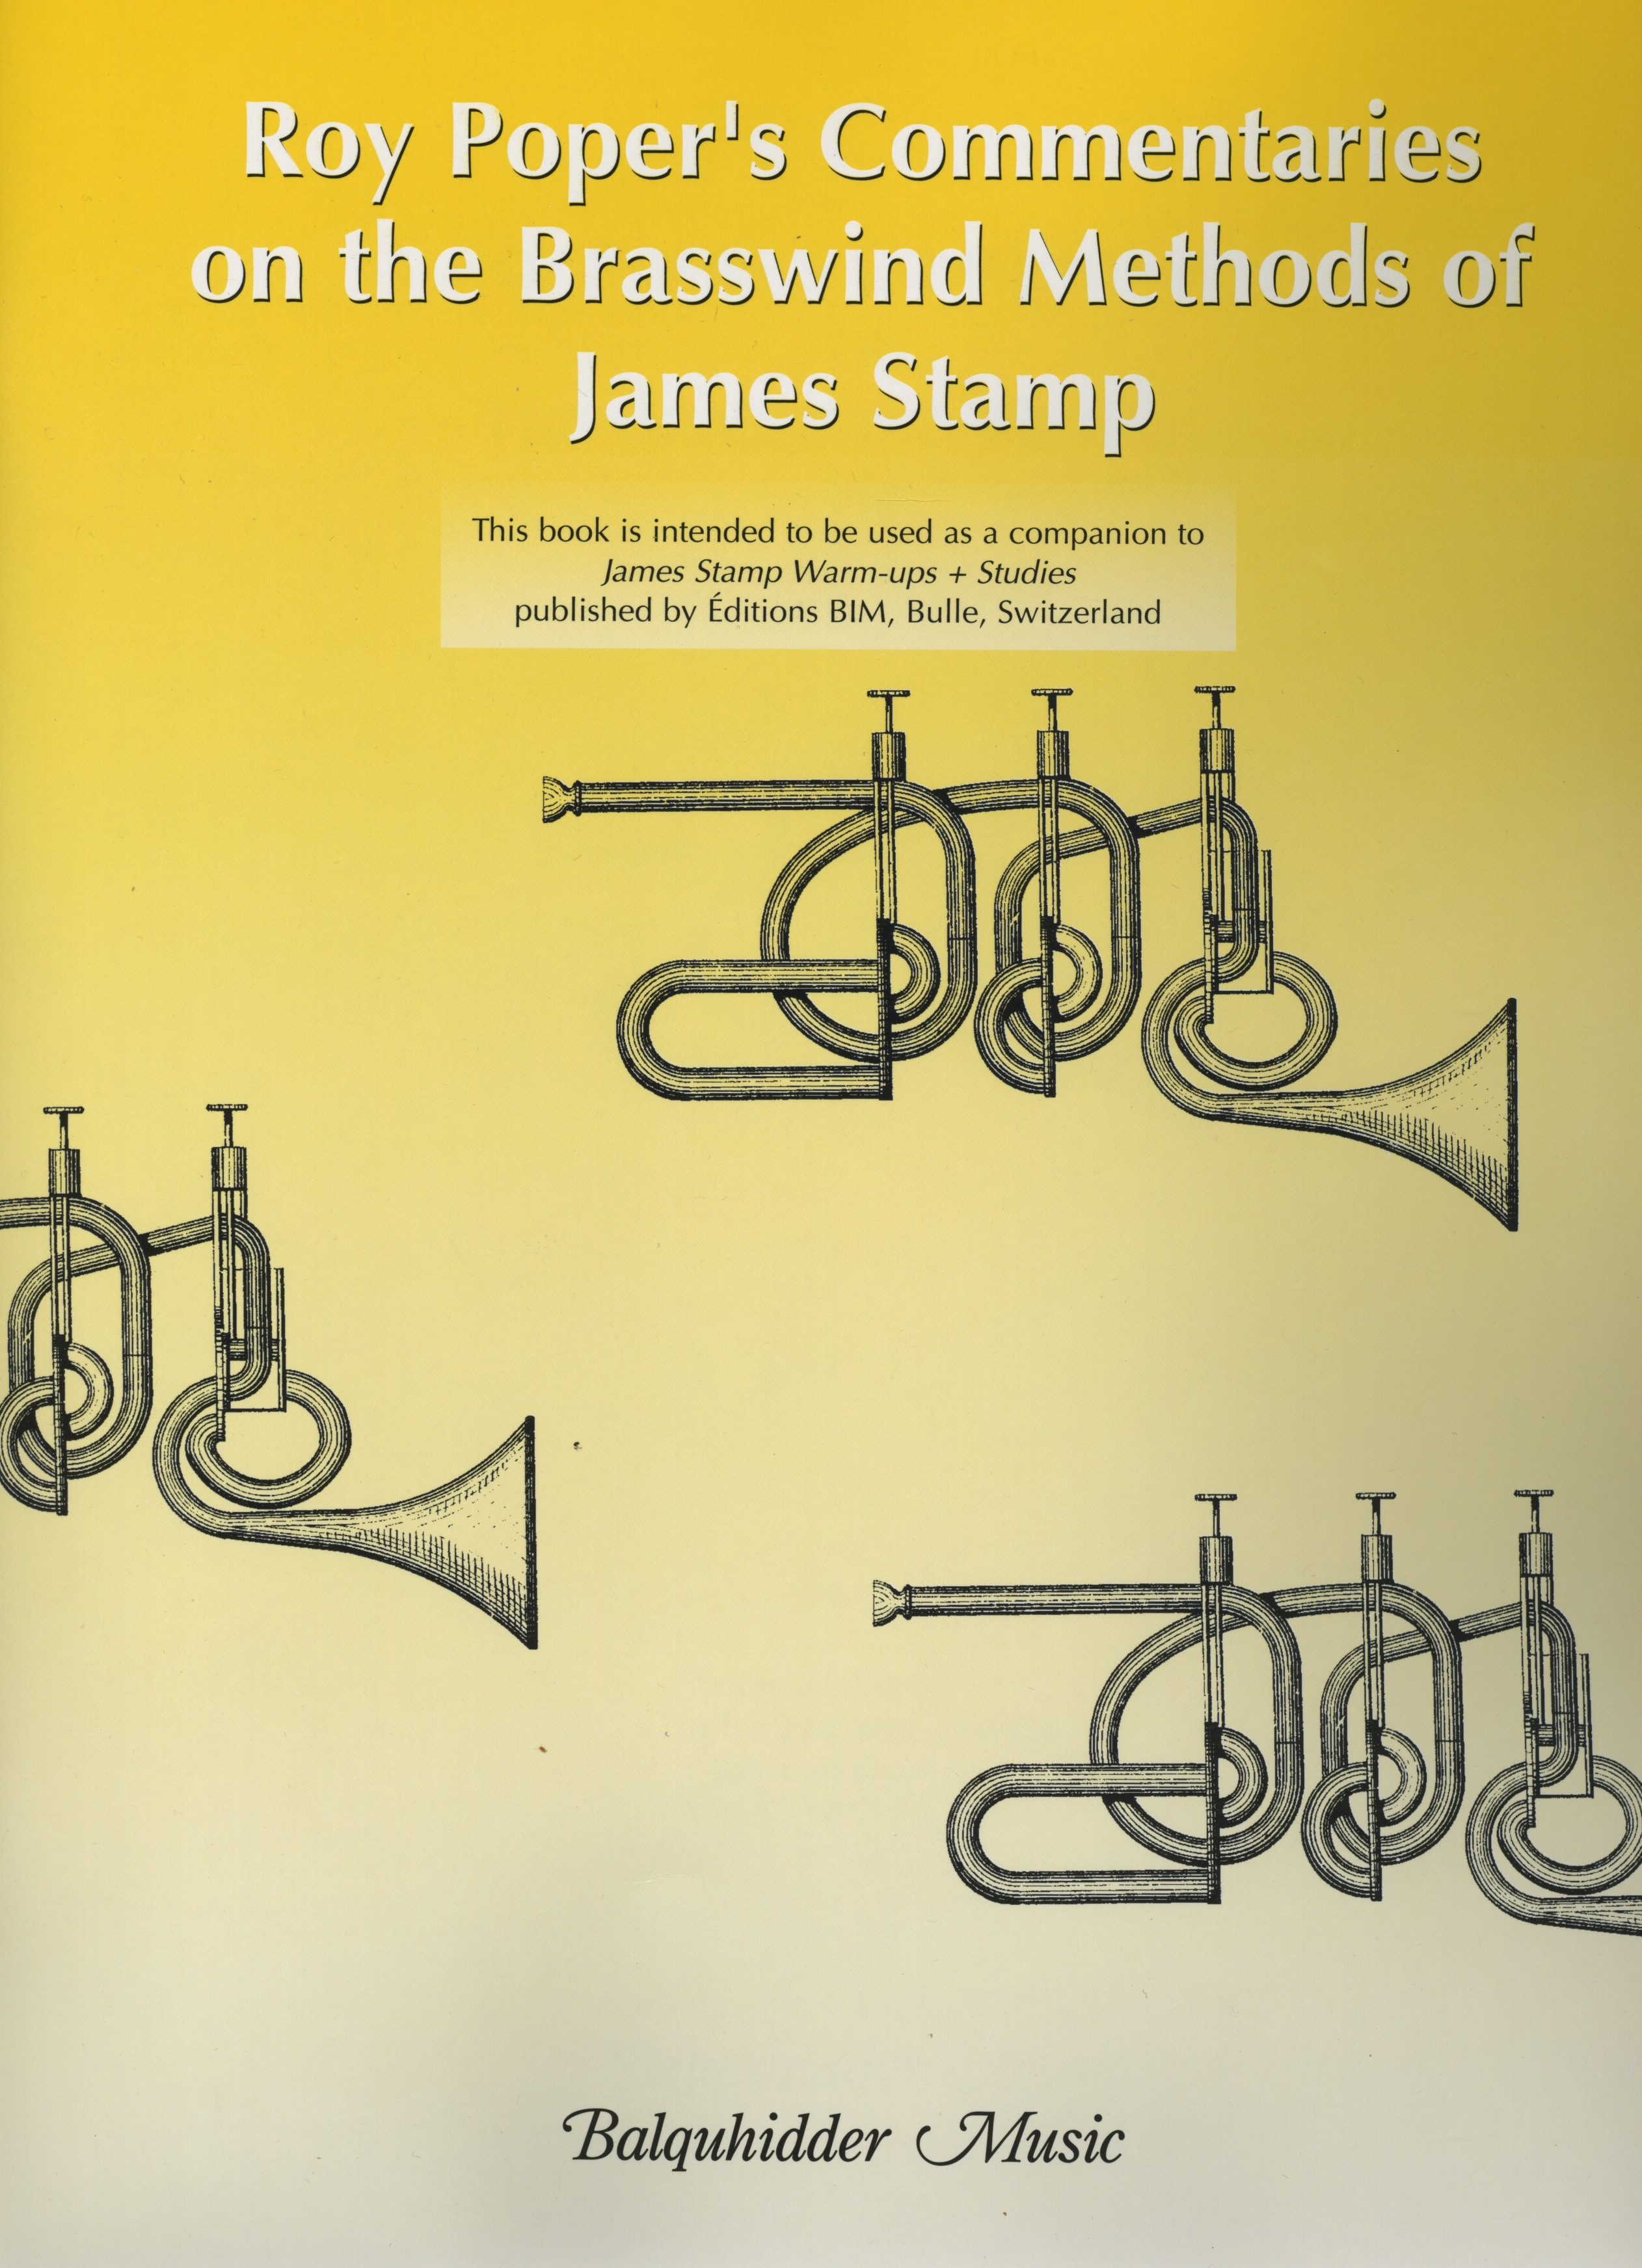 Roy Poper's Commentaries on the Brasswind Methods of James Stamp